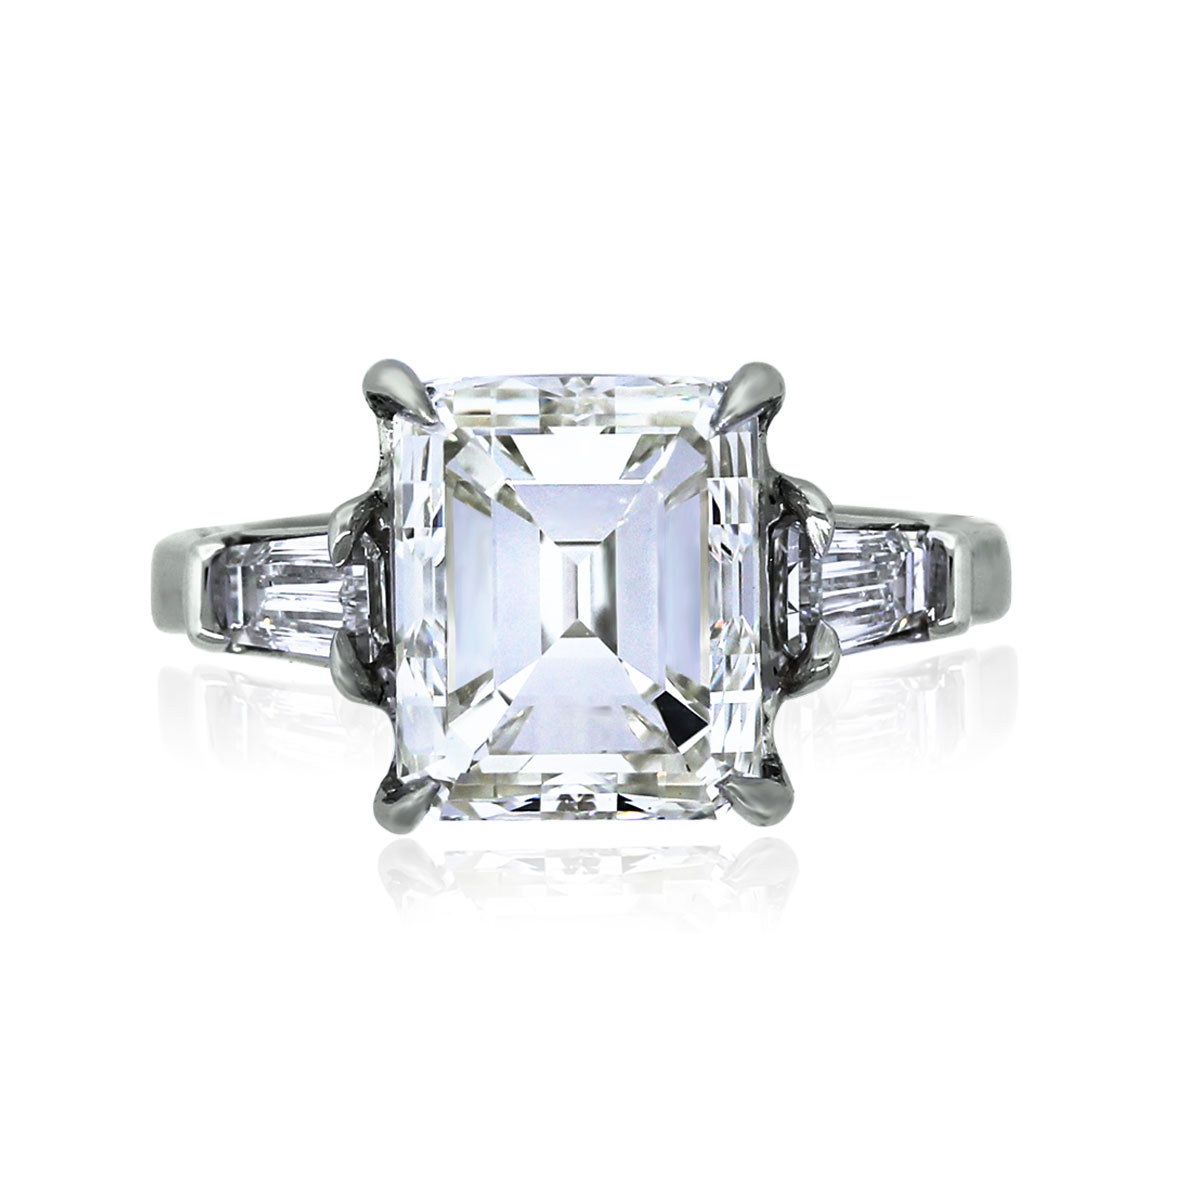 You are viewing this Platinum 4CT Emerald with Baguette Diamonds Engagement Ring!